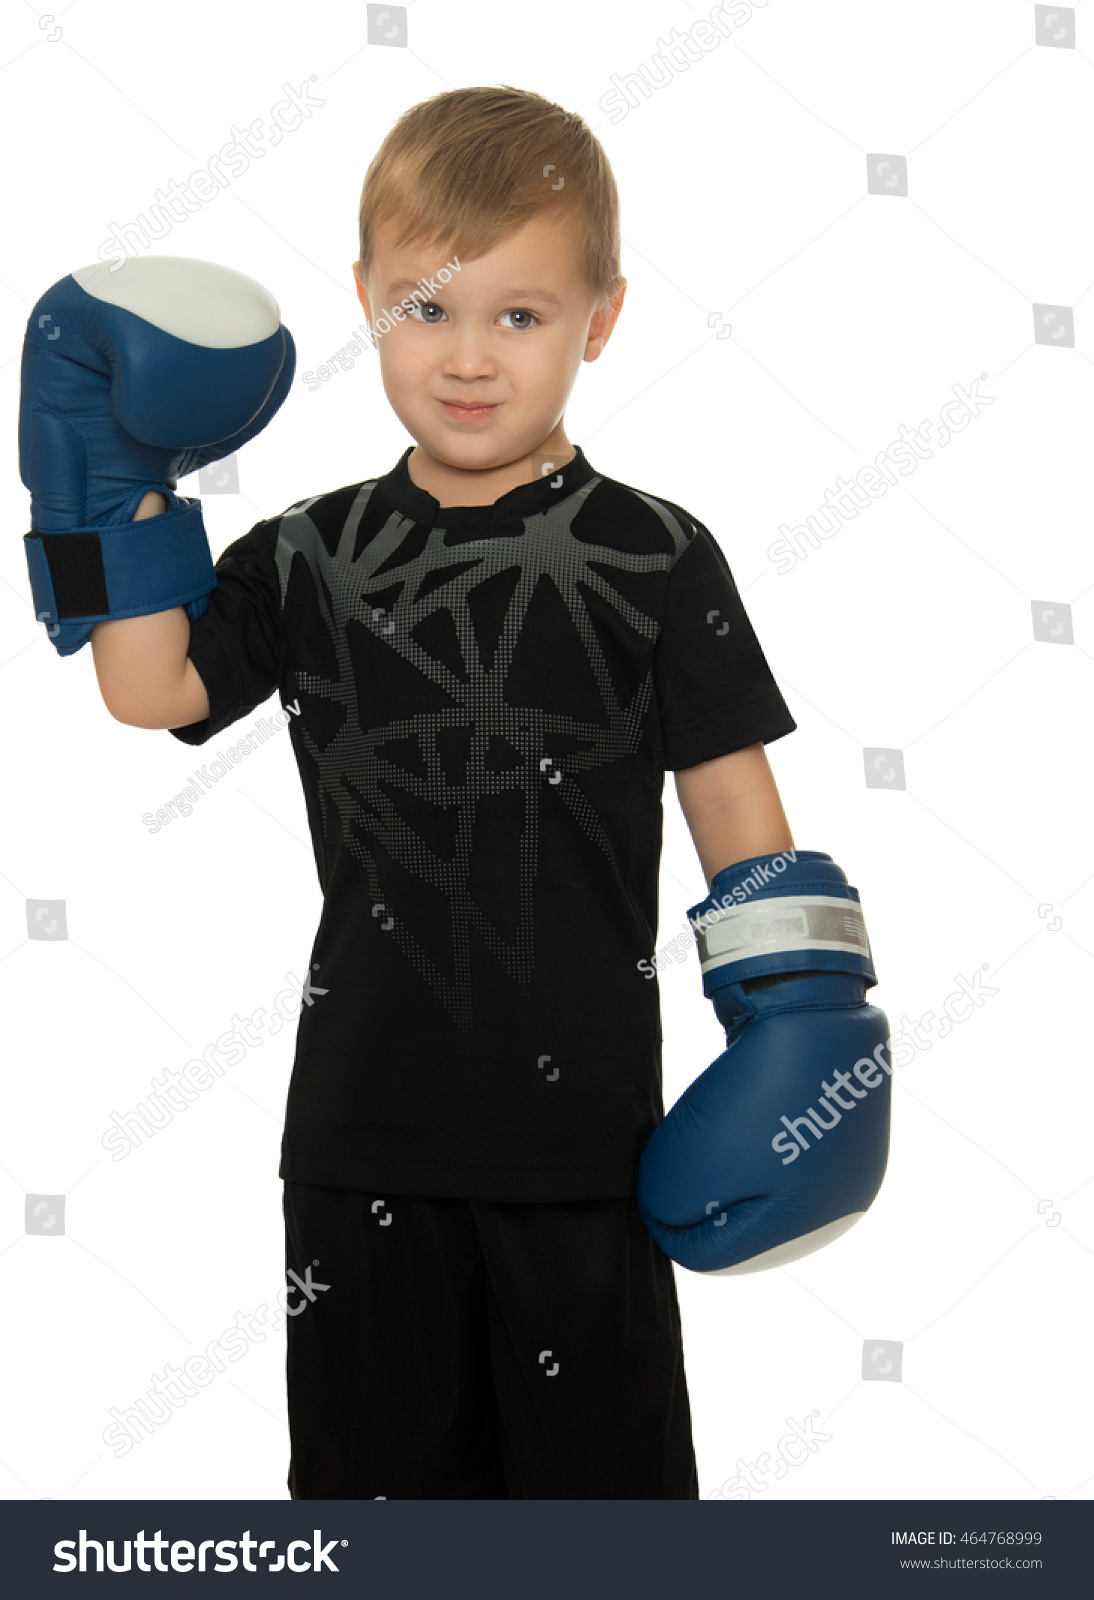 4fd350c86d10 Little boy engaged in Boxing. In his hands he's got the Boxing gloves. Close -up- Isolated on white background - Image